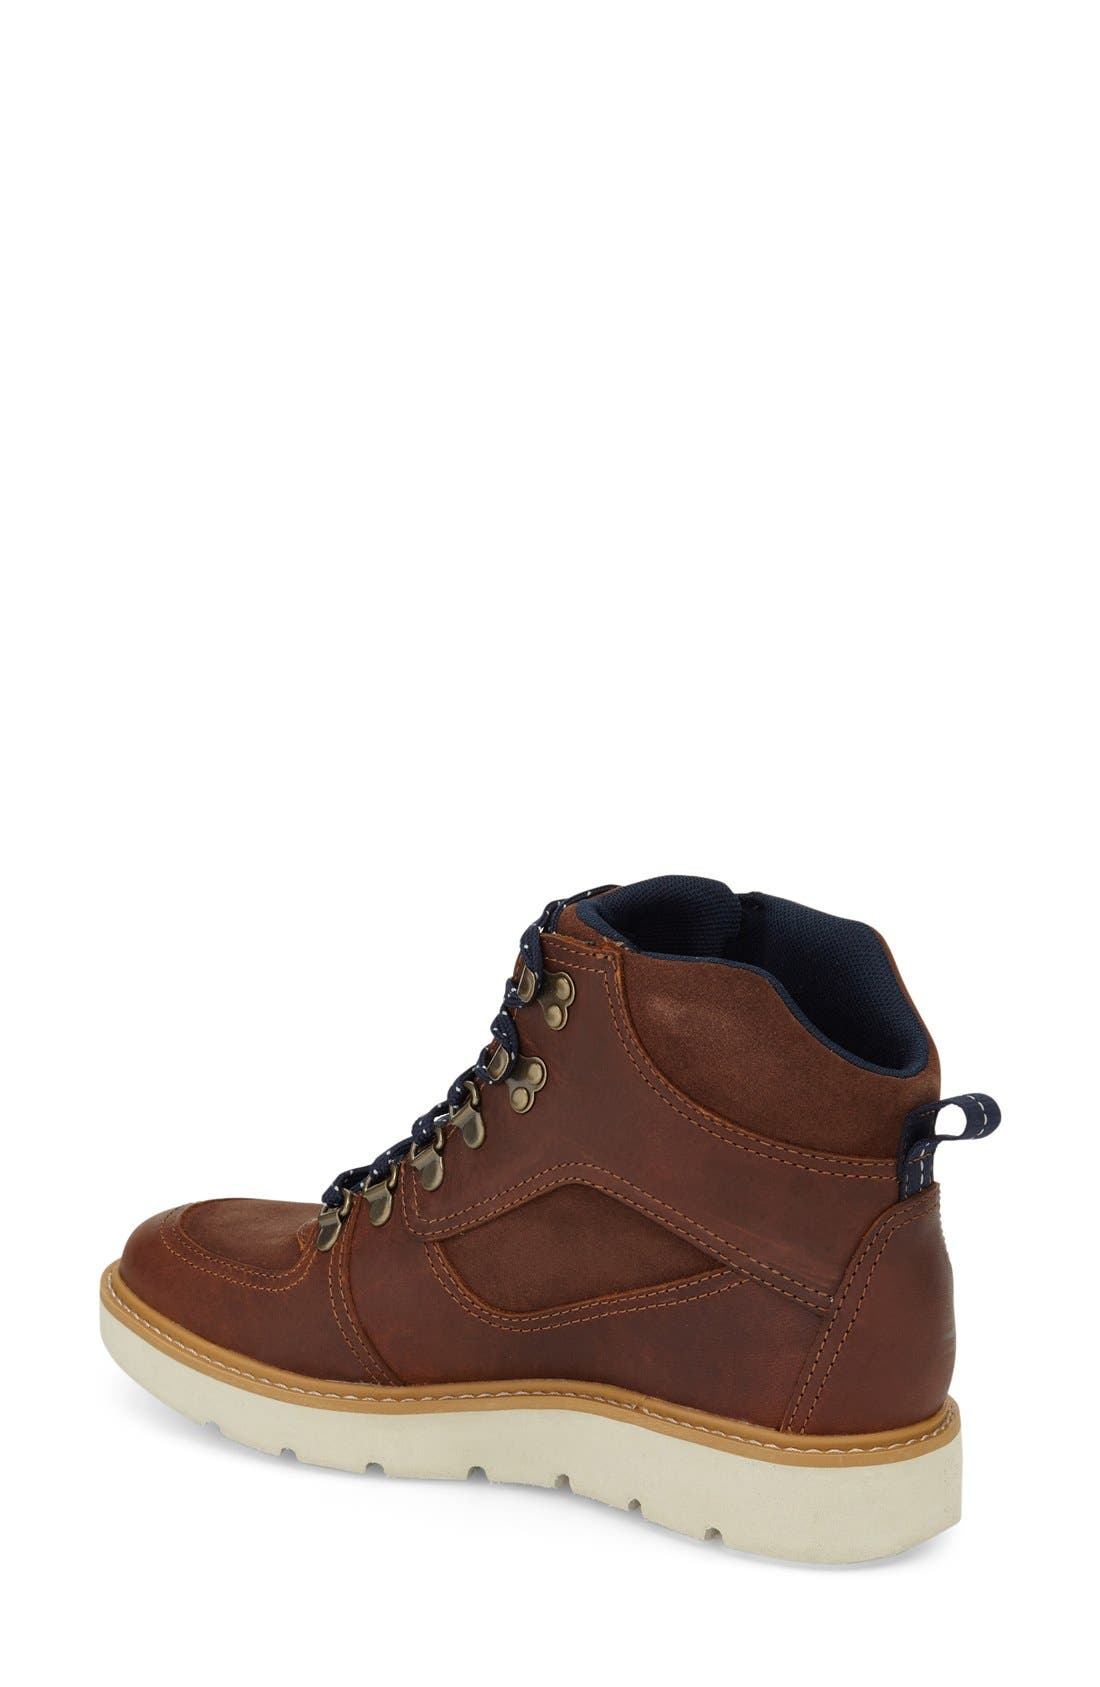 'Kenniston' Lace-Up Boot,                             Alternate thumbnail 2, color,                             Tobacco Leather